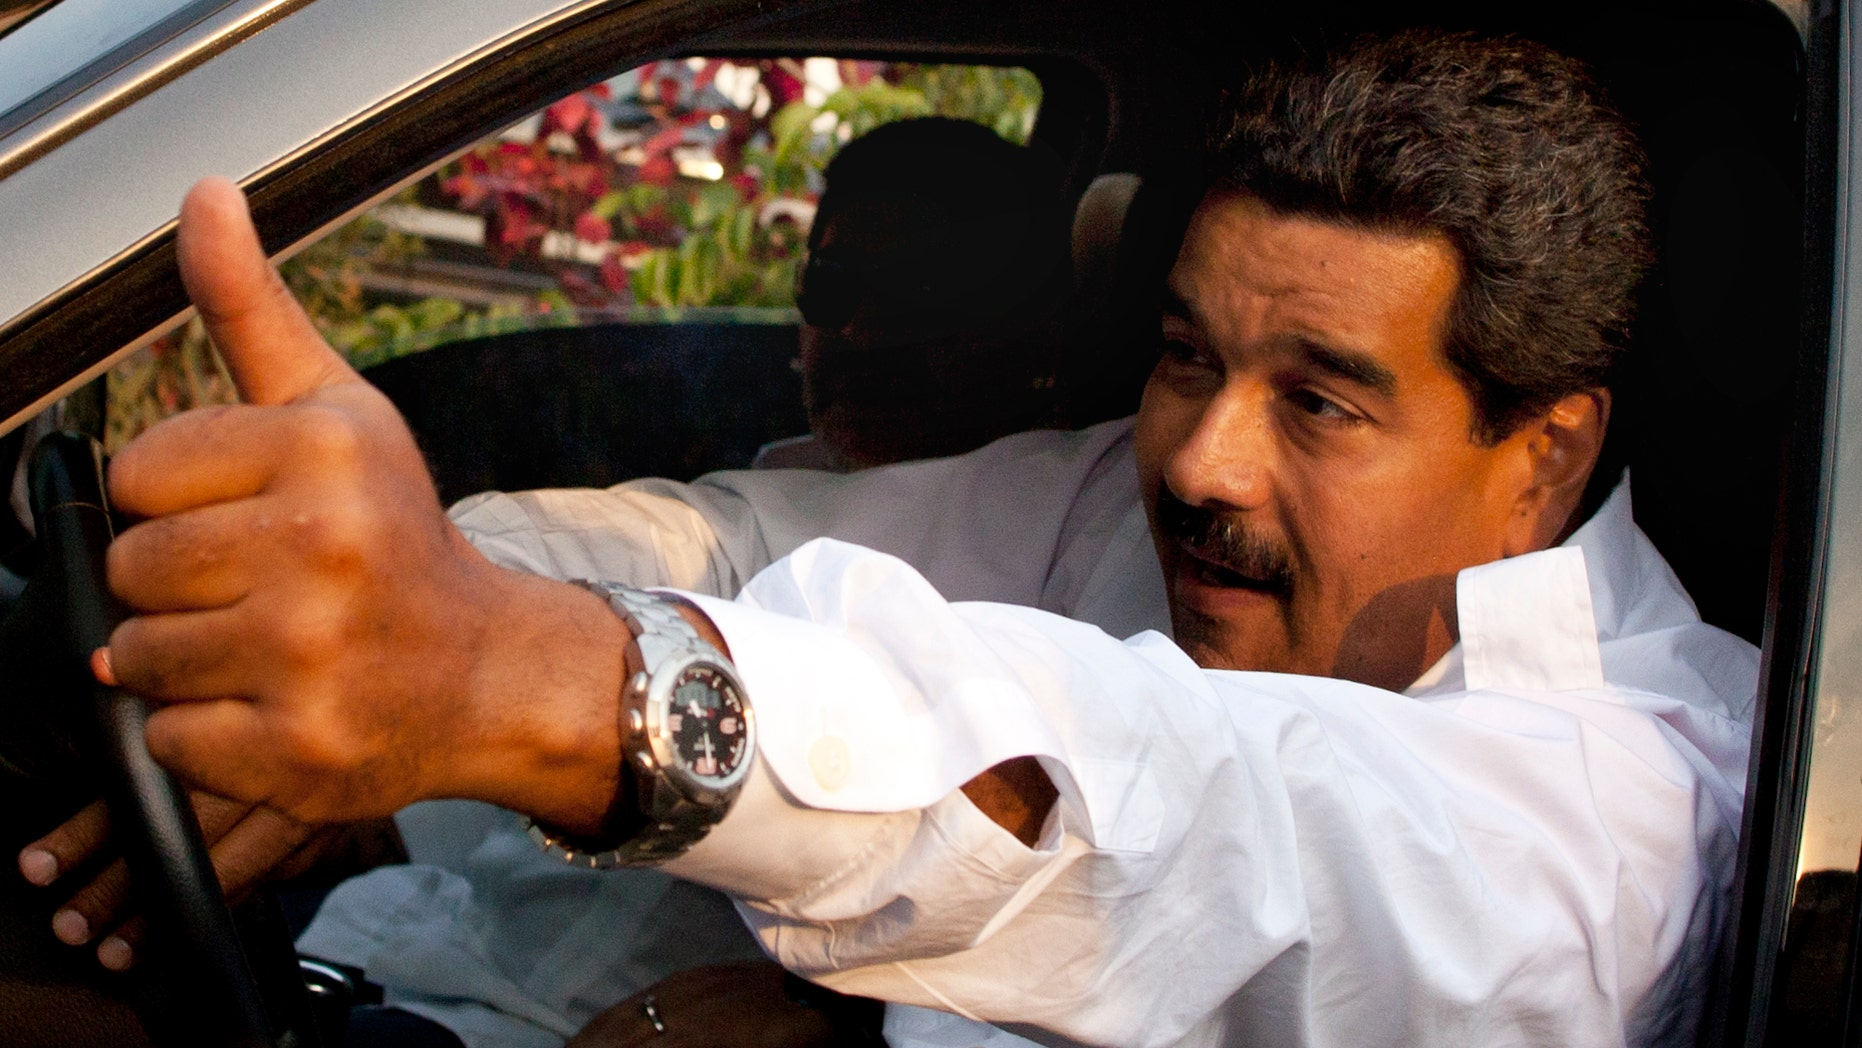 April 12, 2013: Venezuela's interim President Nicolas Maduro gives a thumbs up as Argentina's soccer legend Diego Armando Maradona sits behind him as they leave after paying their respects at the tomb of late President Hugo Chavez in Caracas, Venezuela.